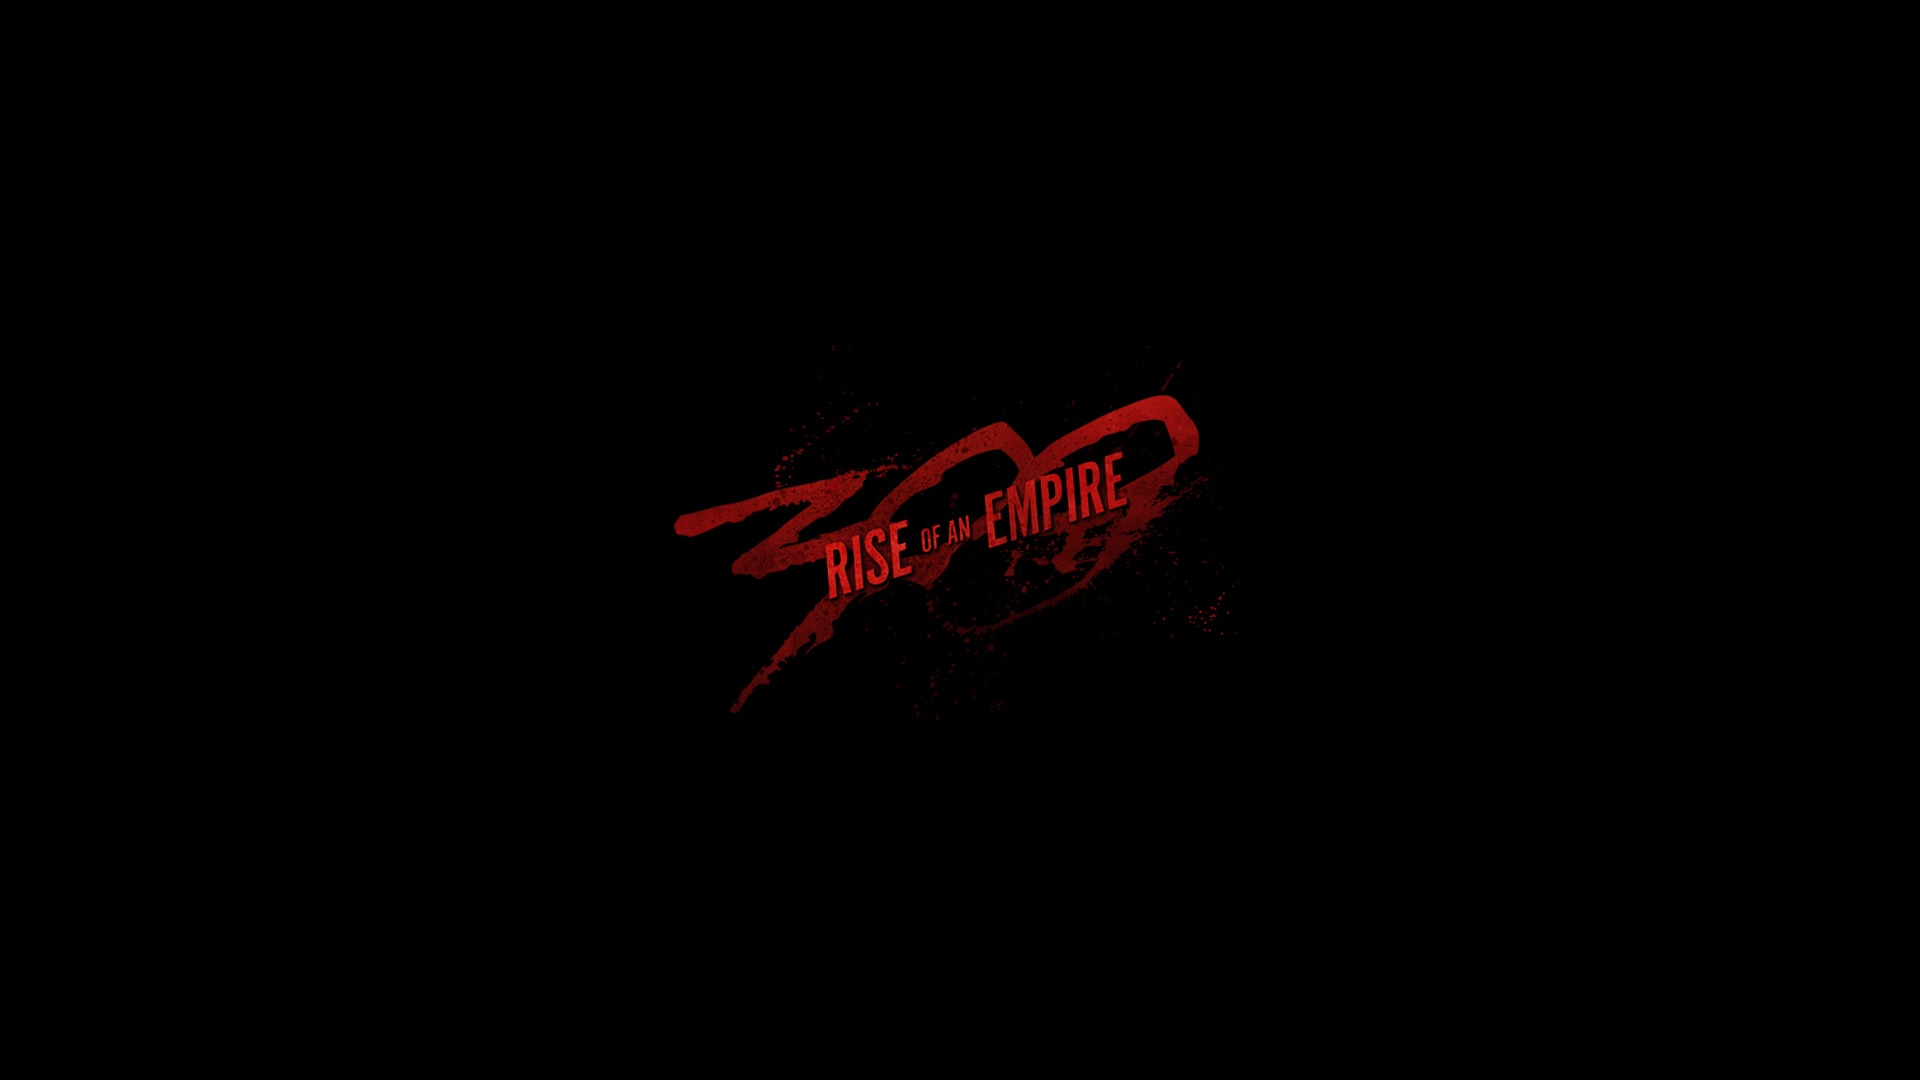 300 rise of an empire logo. 46 famous movie scenes before and after